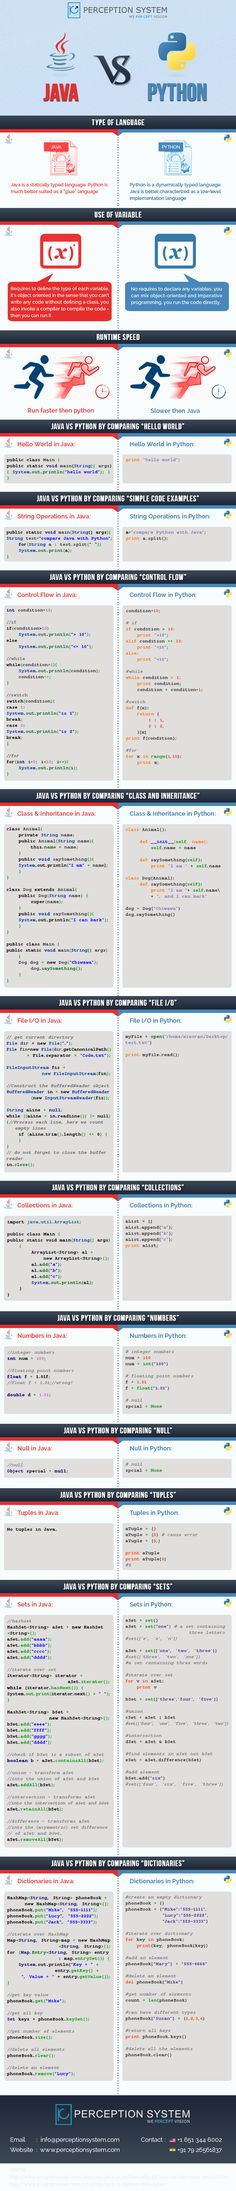 Finally, an easy to understand Java Vs. Python comparison.